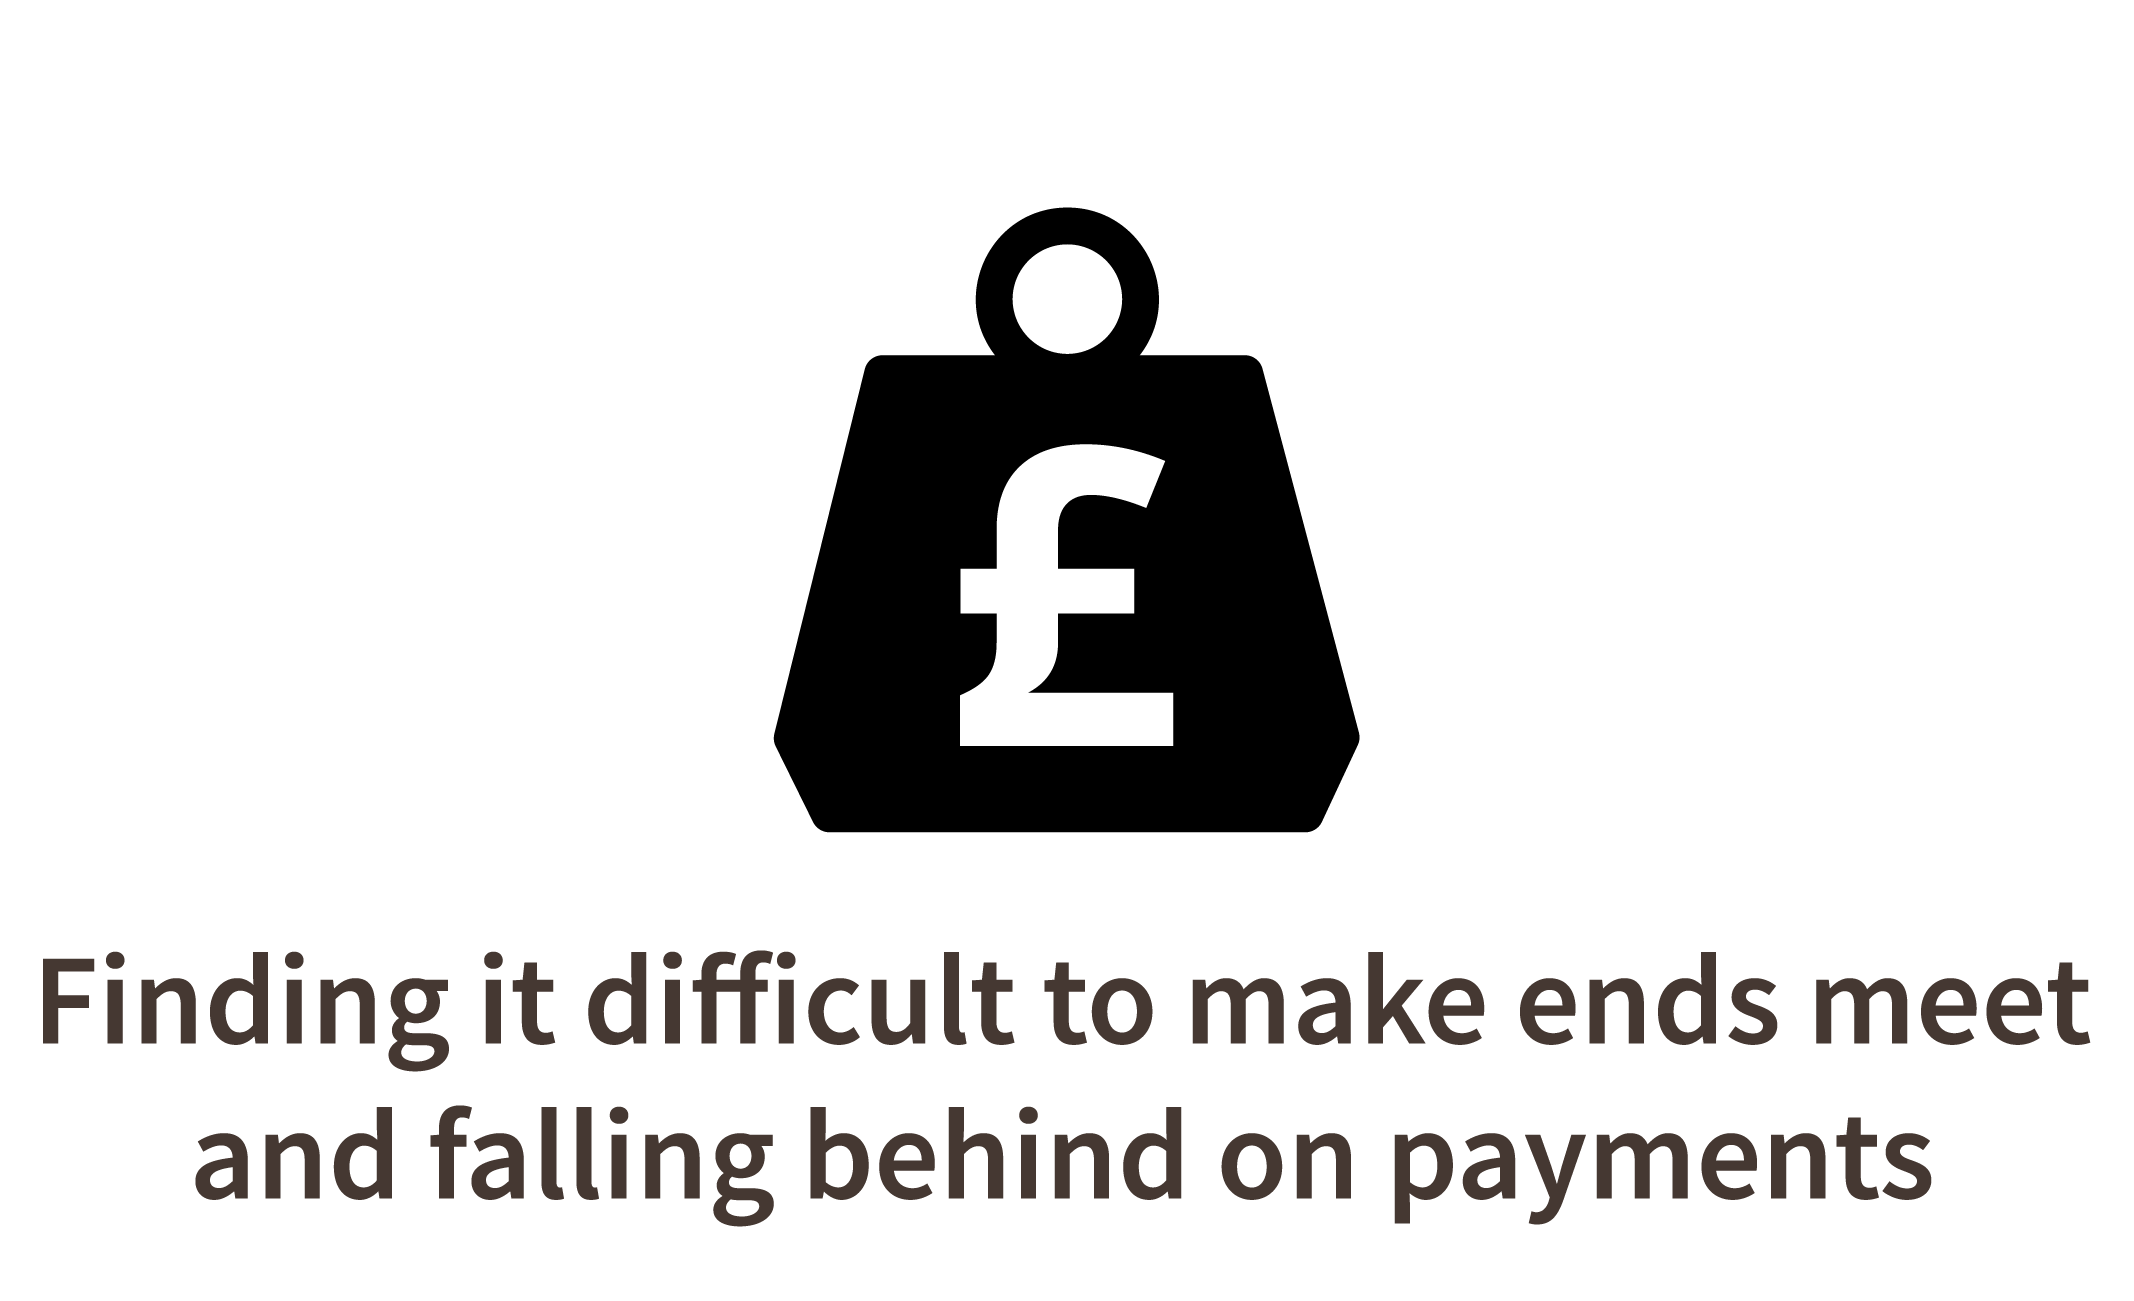 Finding it difficult to make ends meet and falling behind on payments